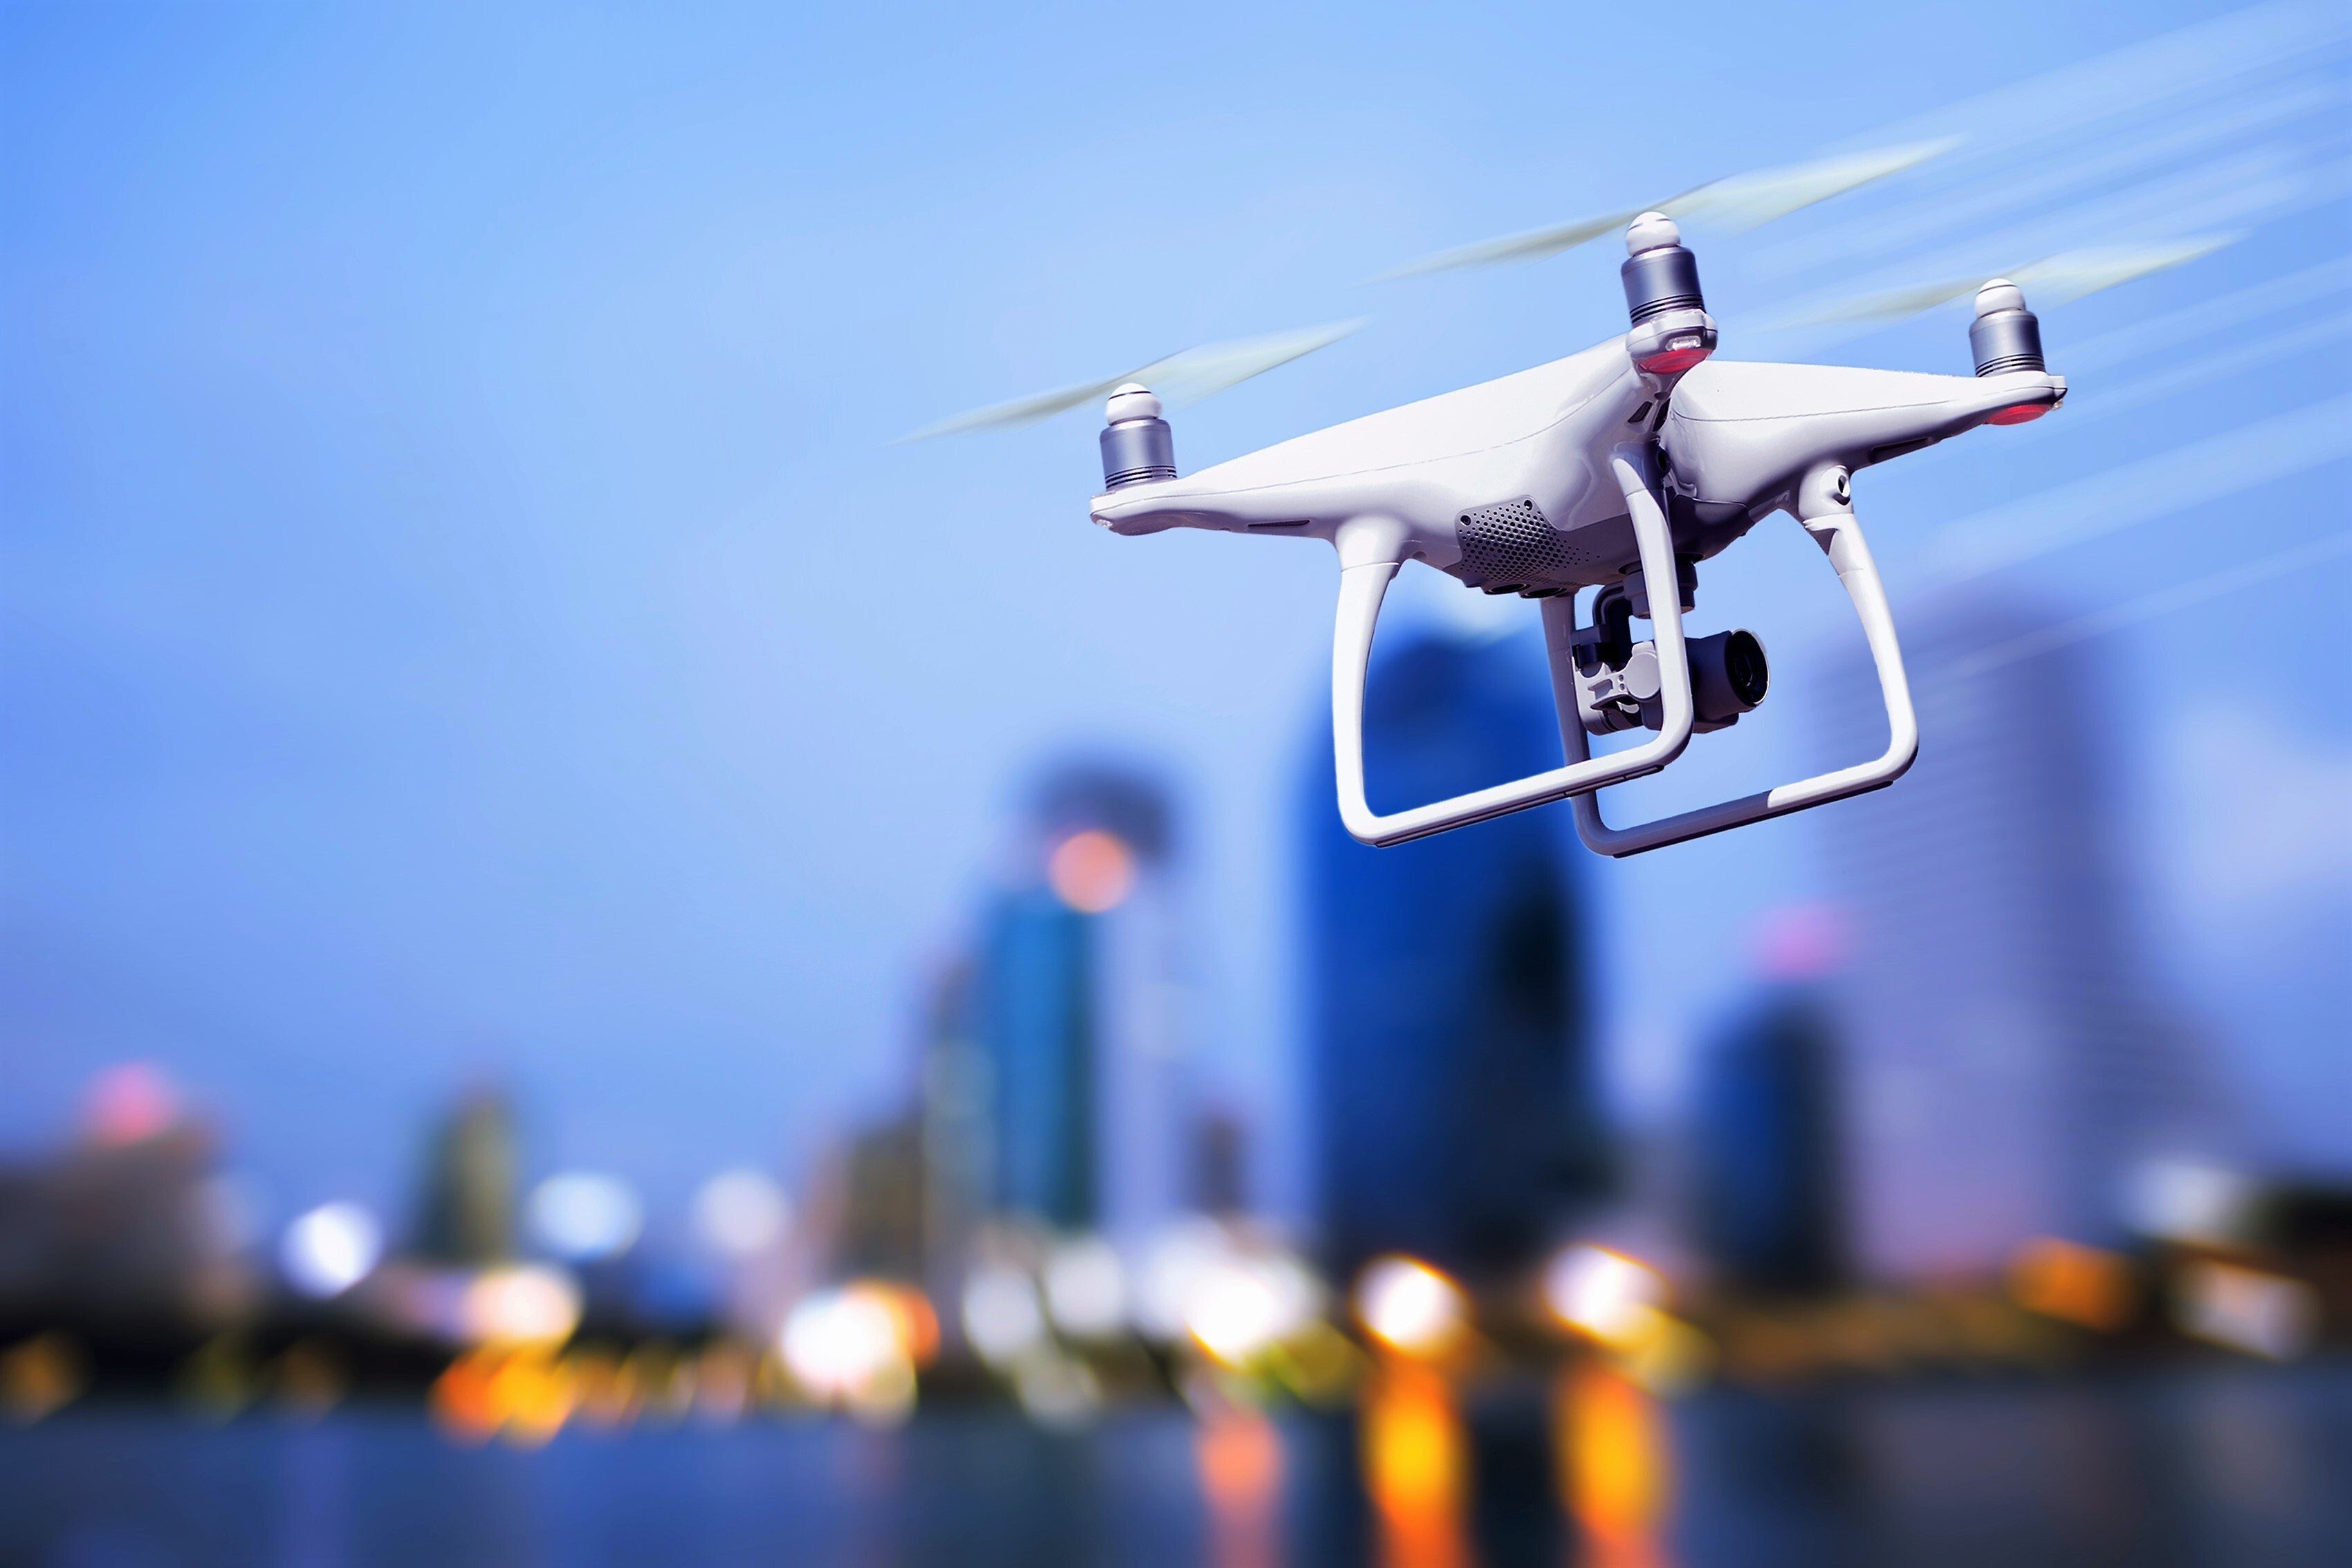 a white drone in flight across a city at dusk